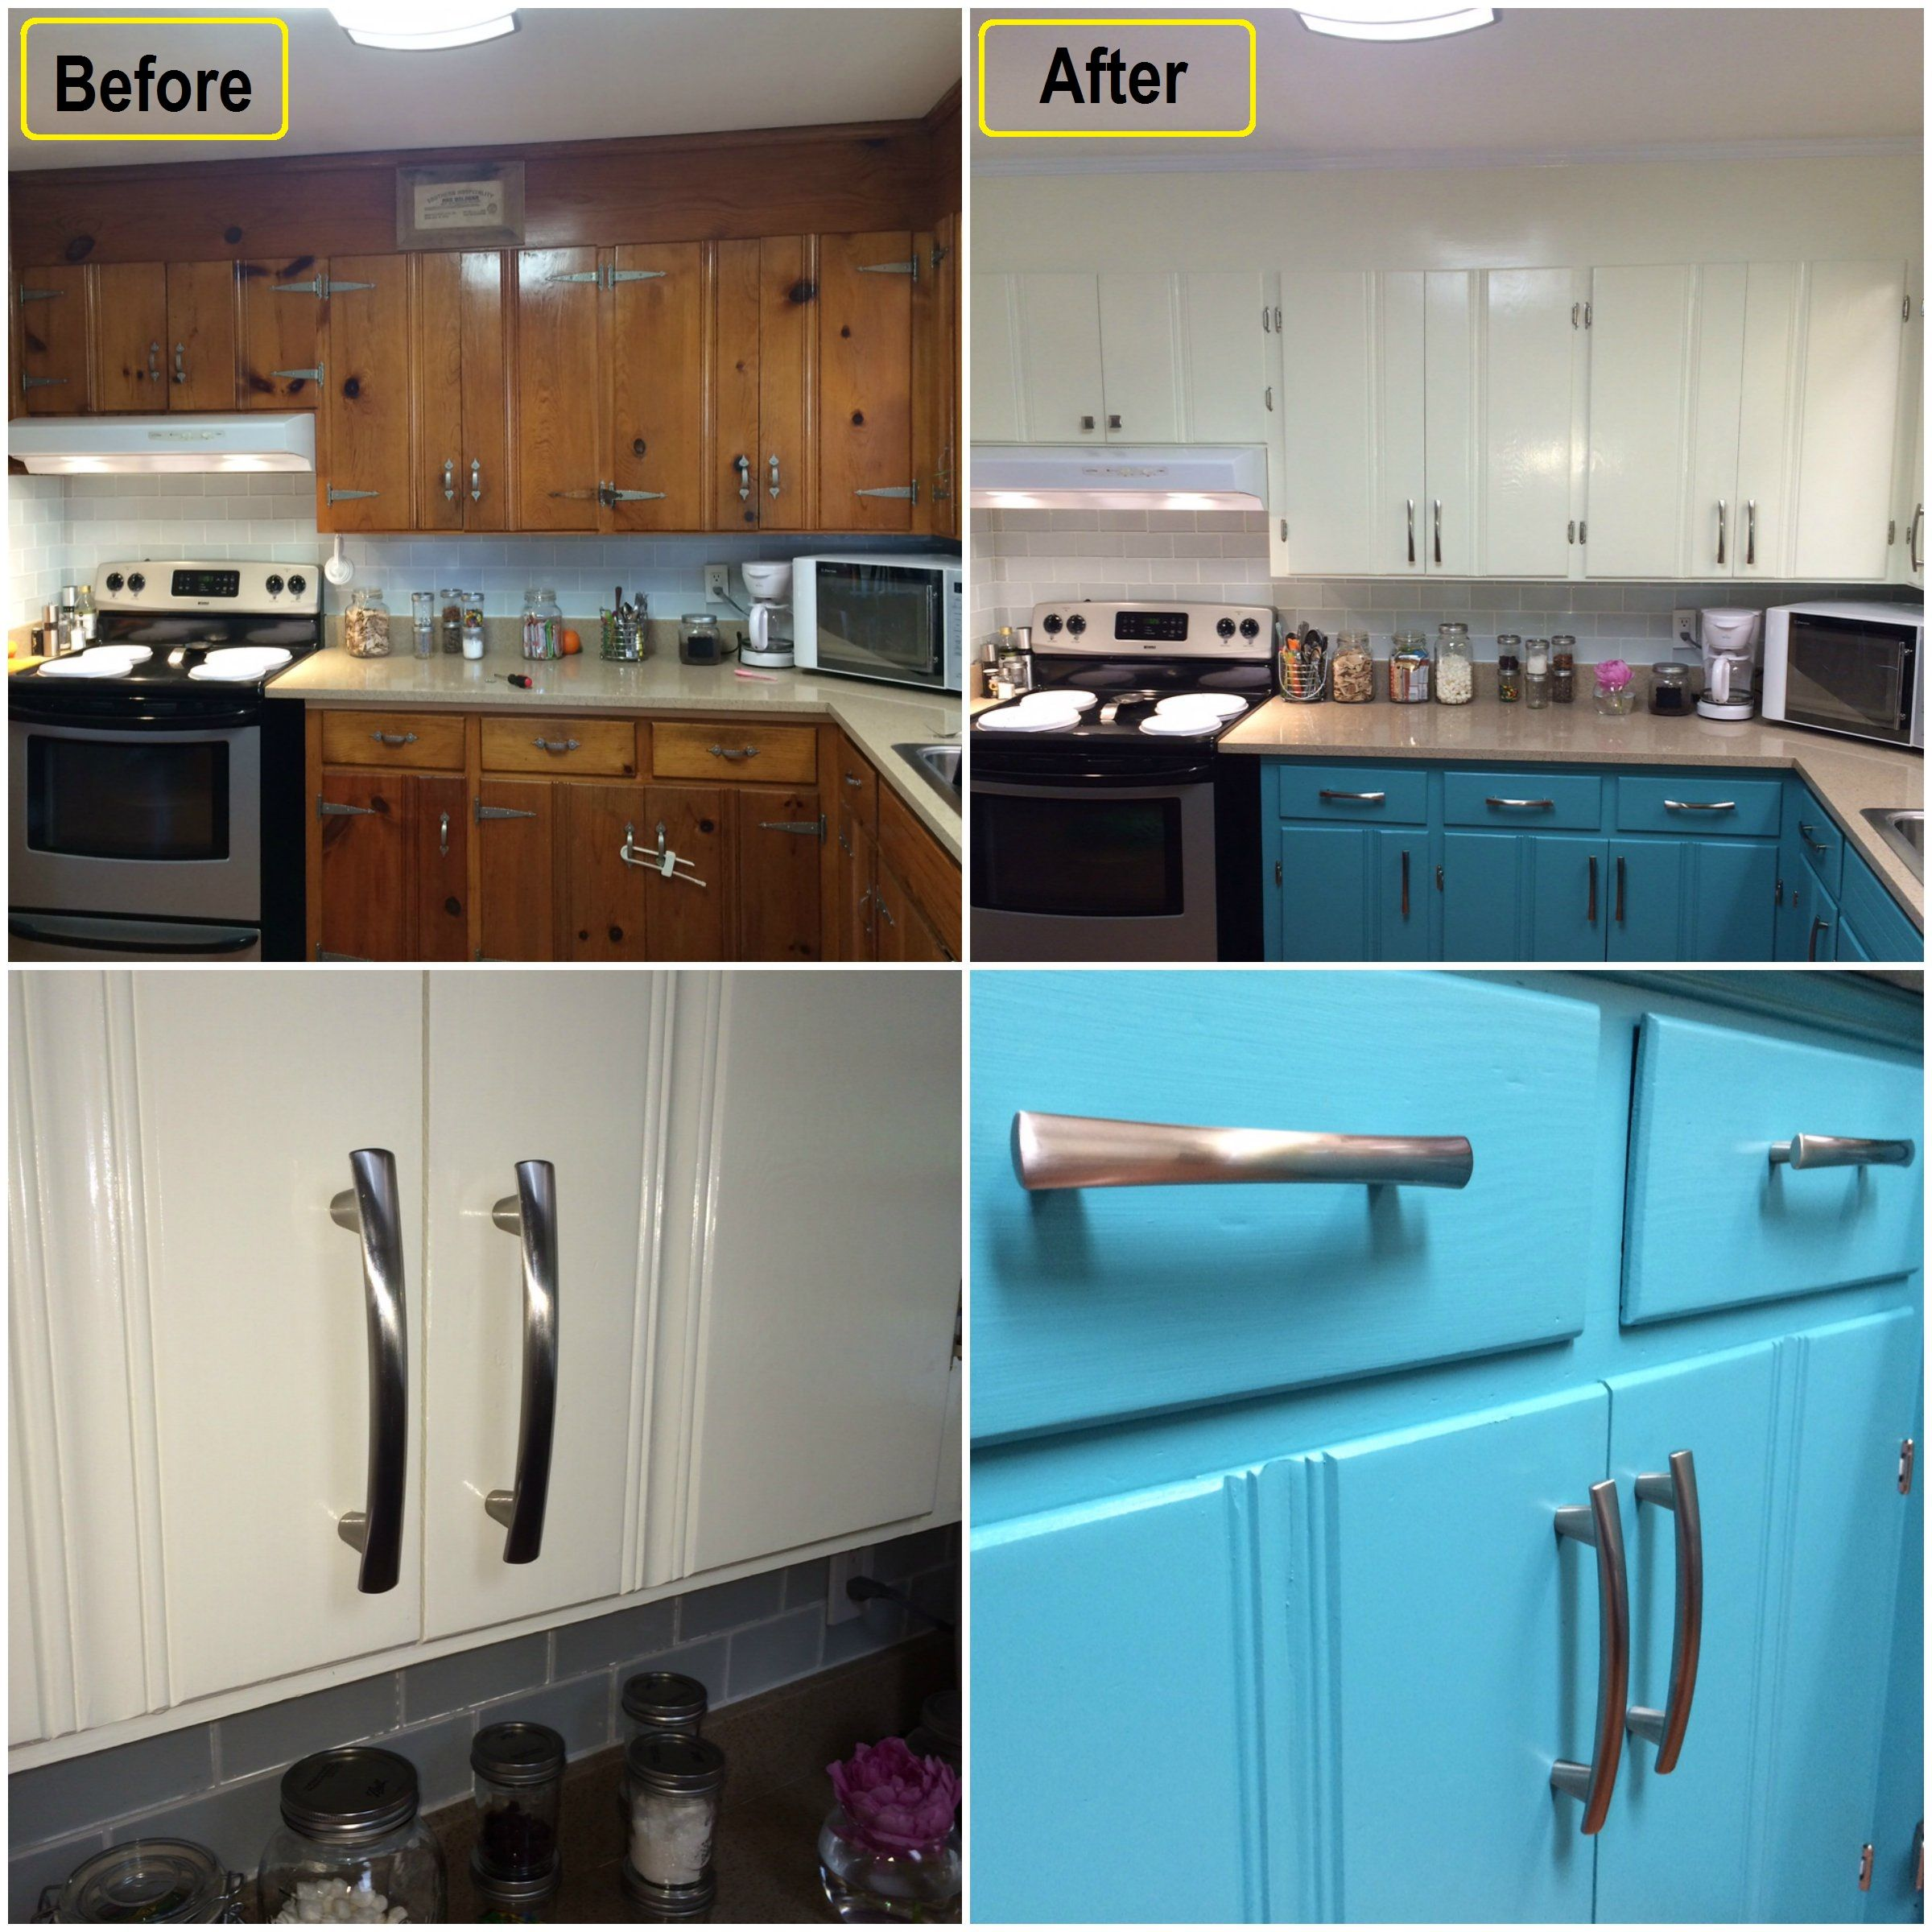 Knotty Pine Cabinets: Knotty Pine Kitchen Makeover To Modern Chic Kitchen.